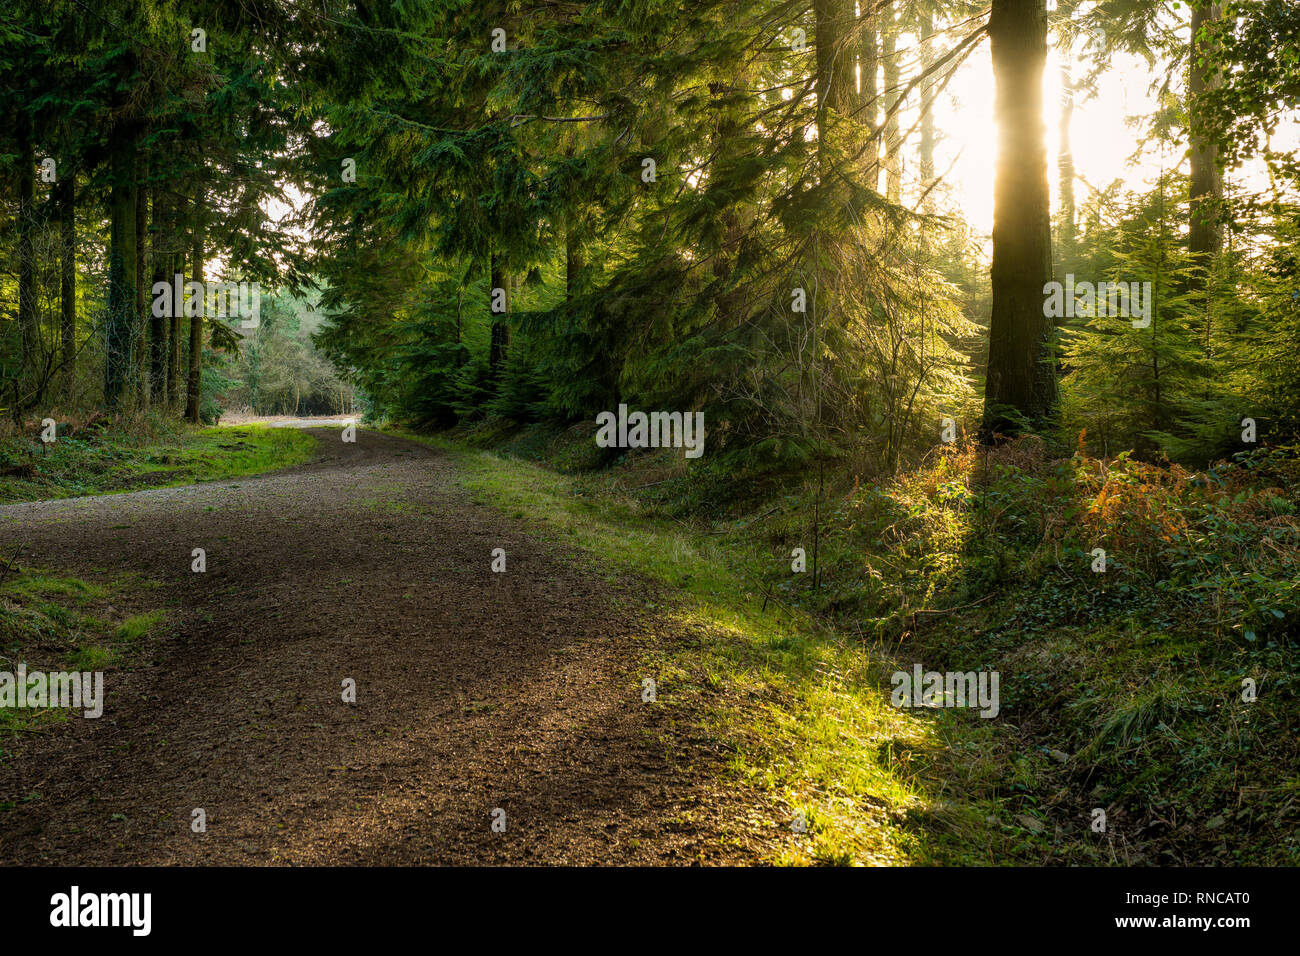 A gravel road leading through sunlit conifer woodland. - Stock Image